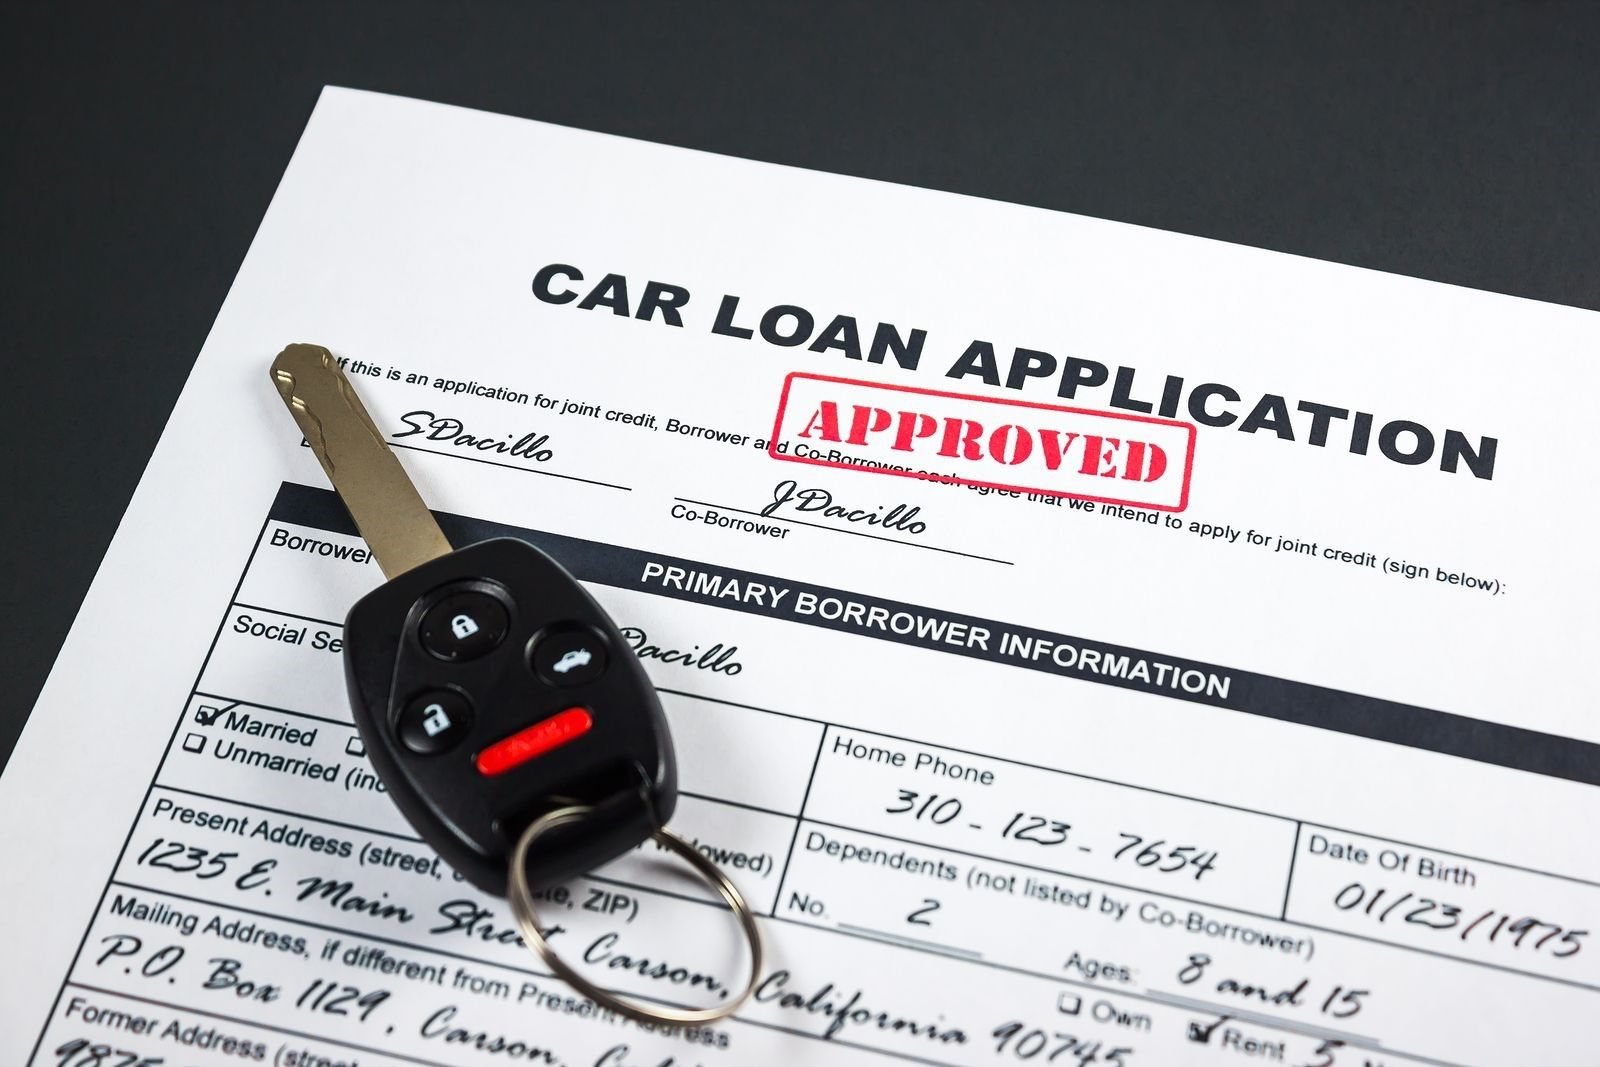 A low credit score can make it a challenge for car buyers